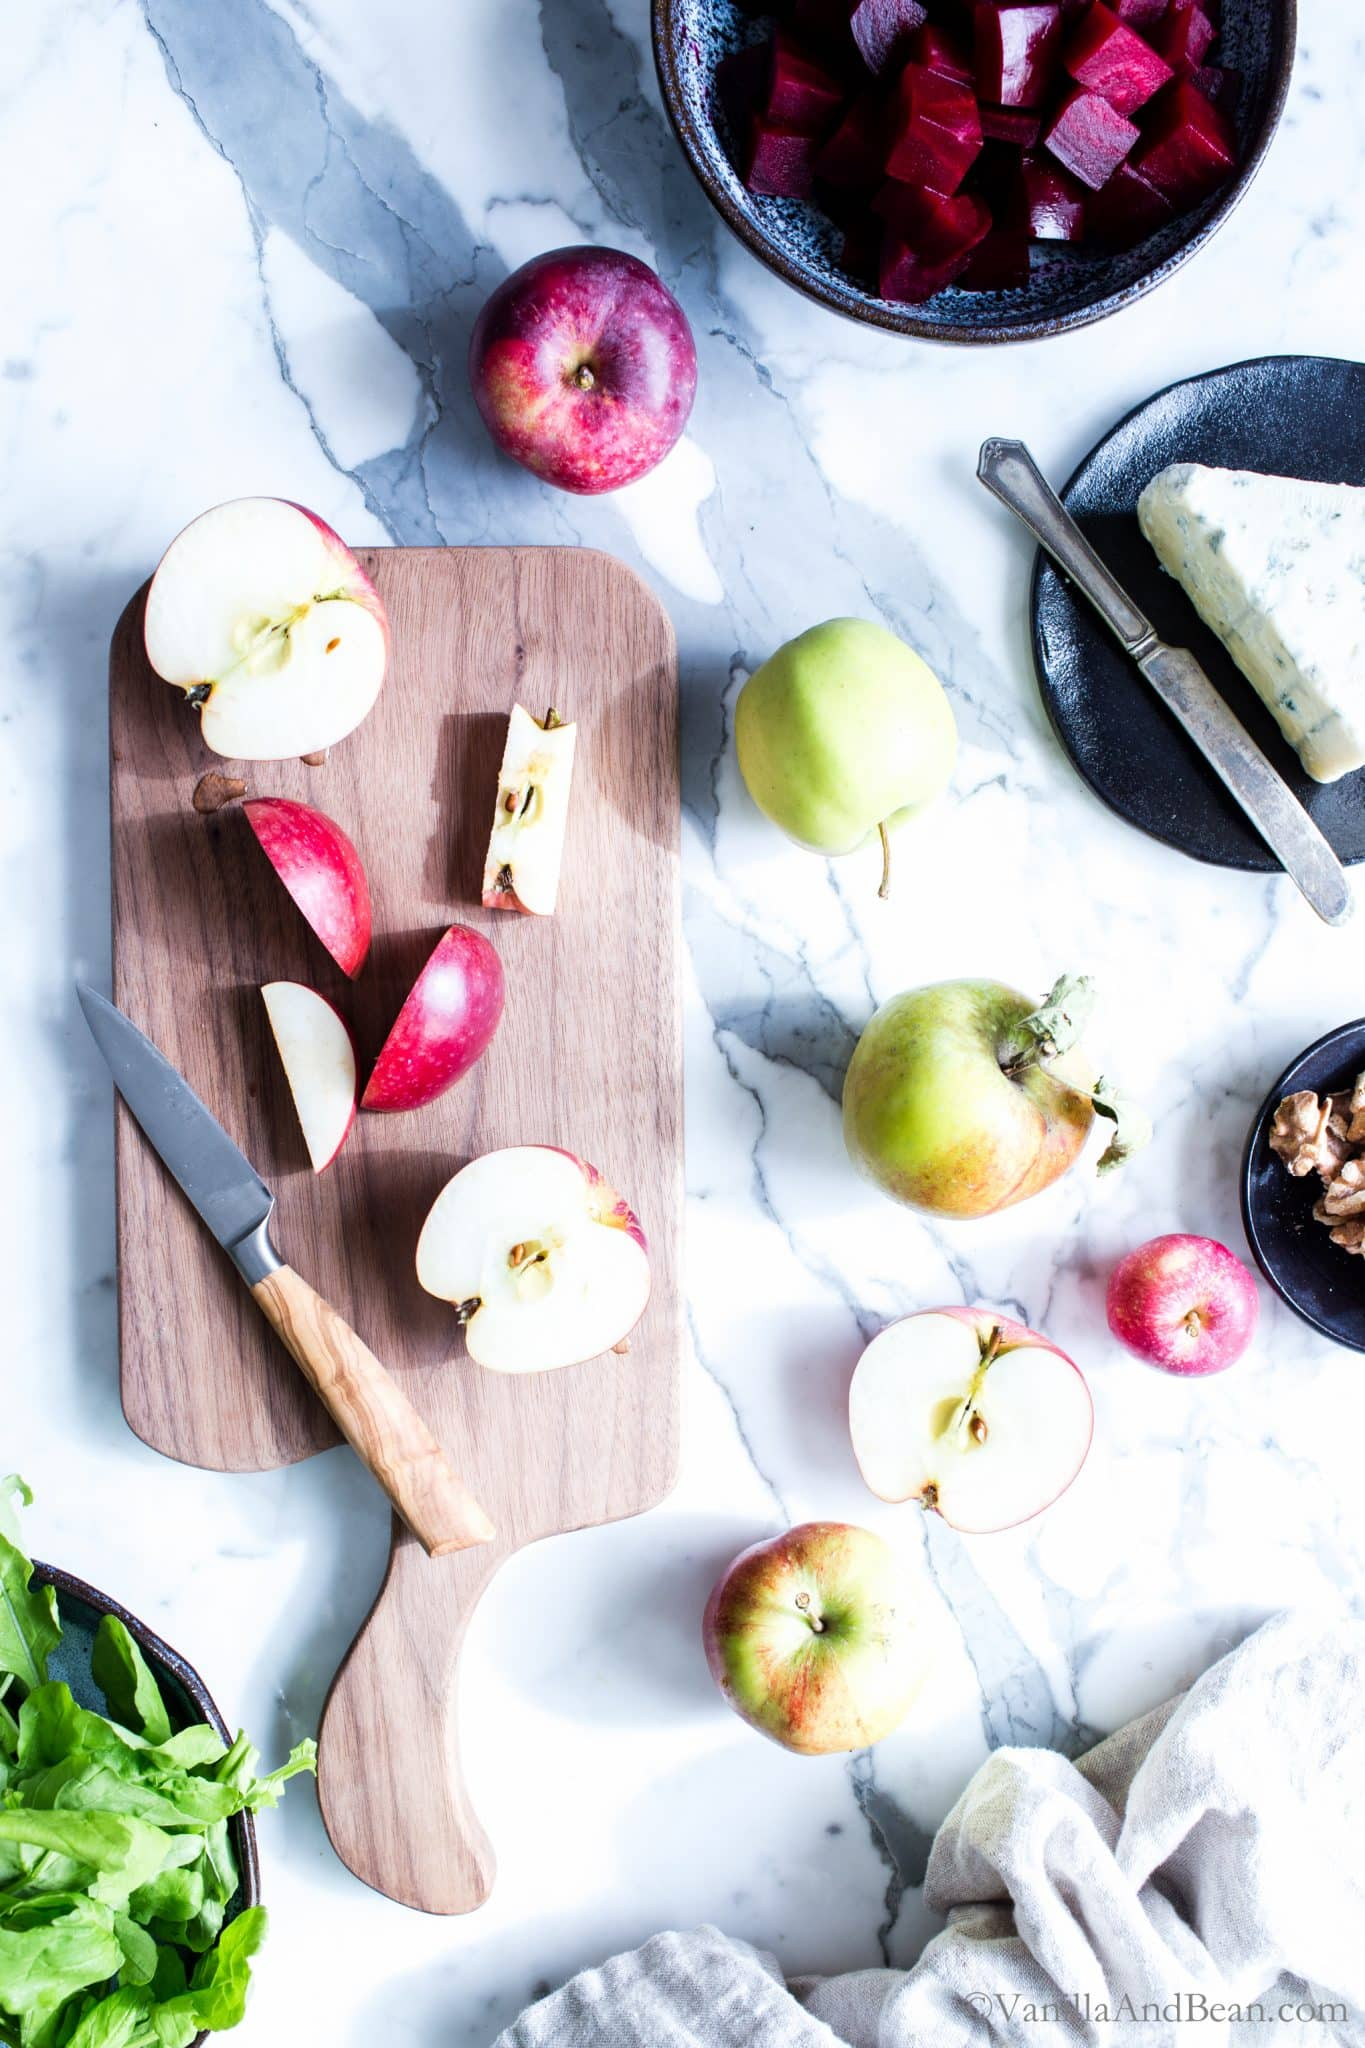 Cutting apples on a cutting board for Beet and Apple Salad with Apple Cider Vinaigrette.